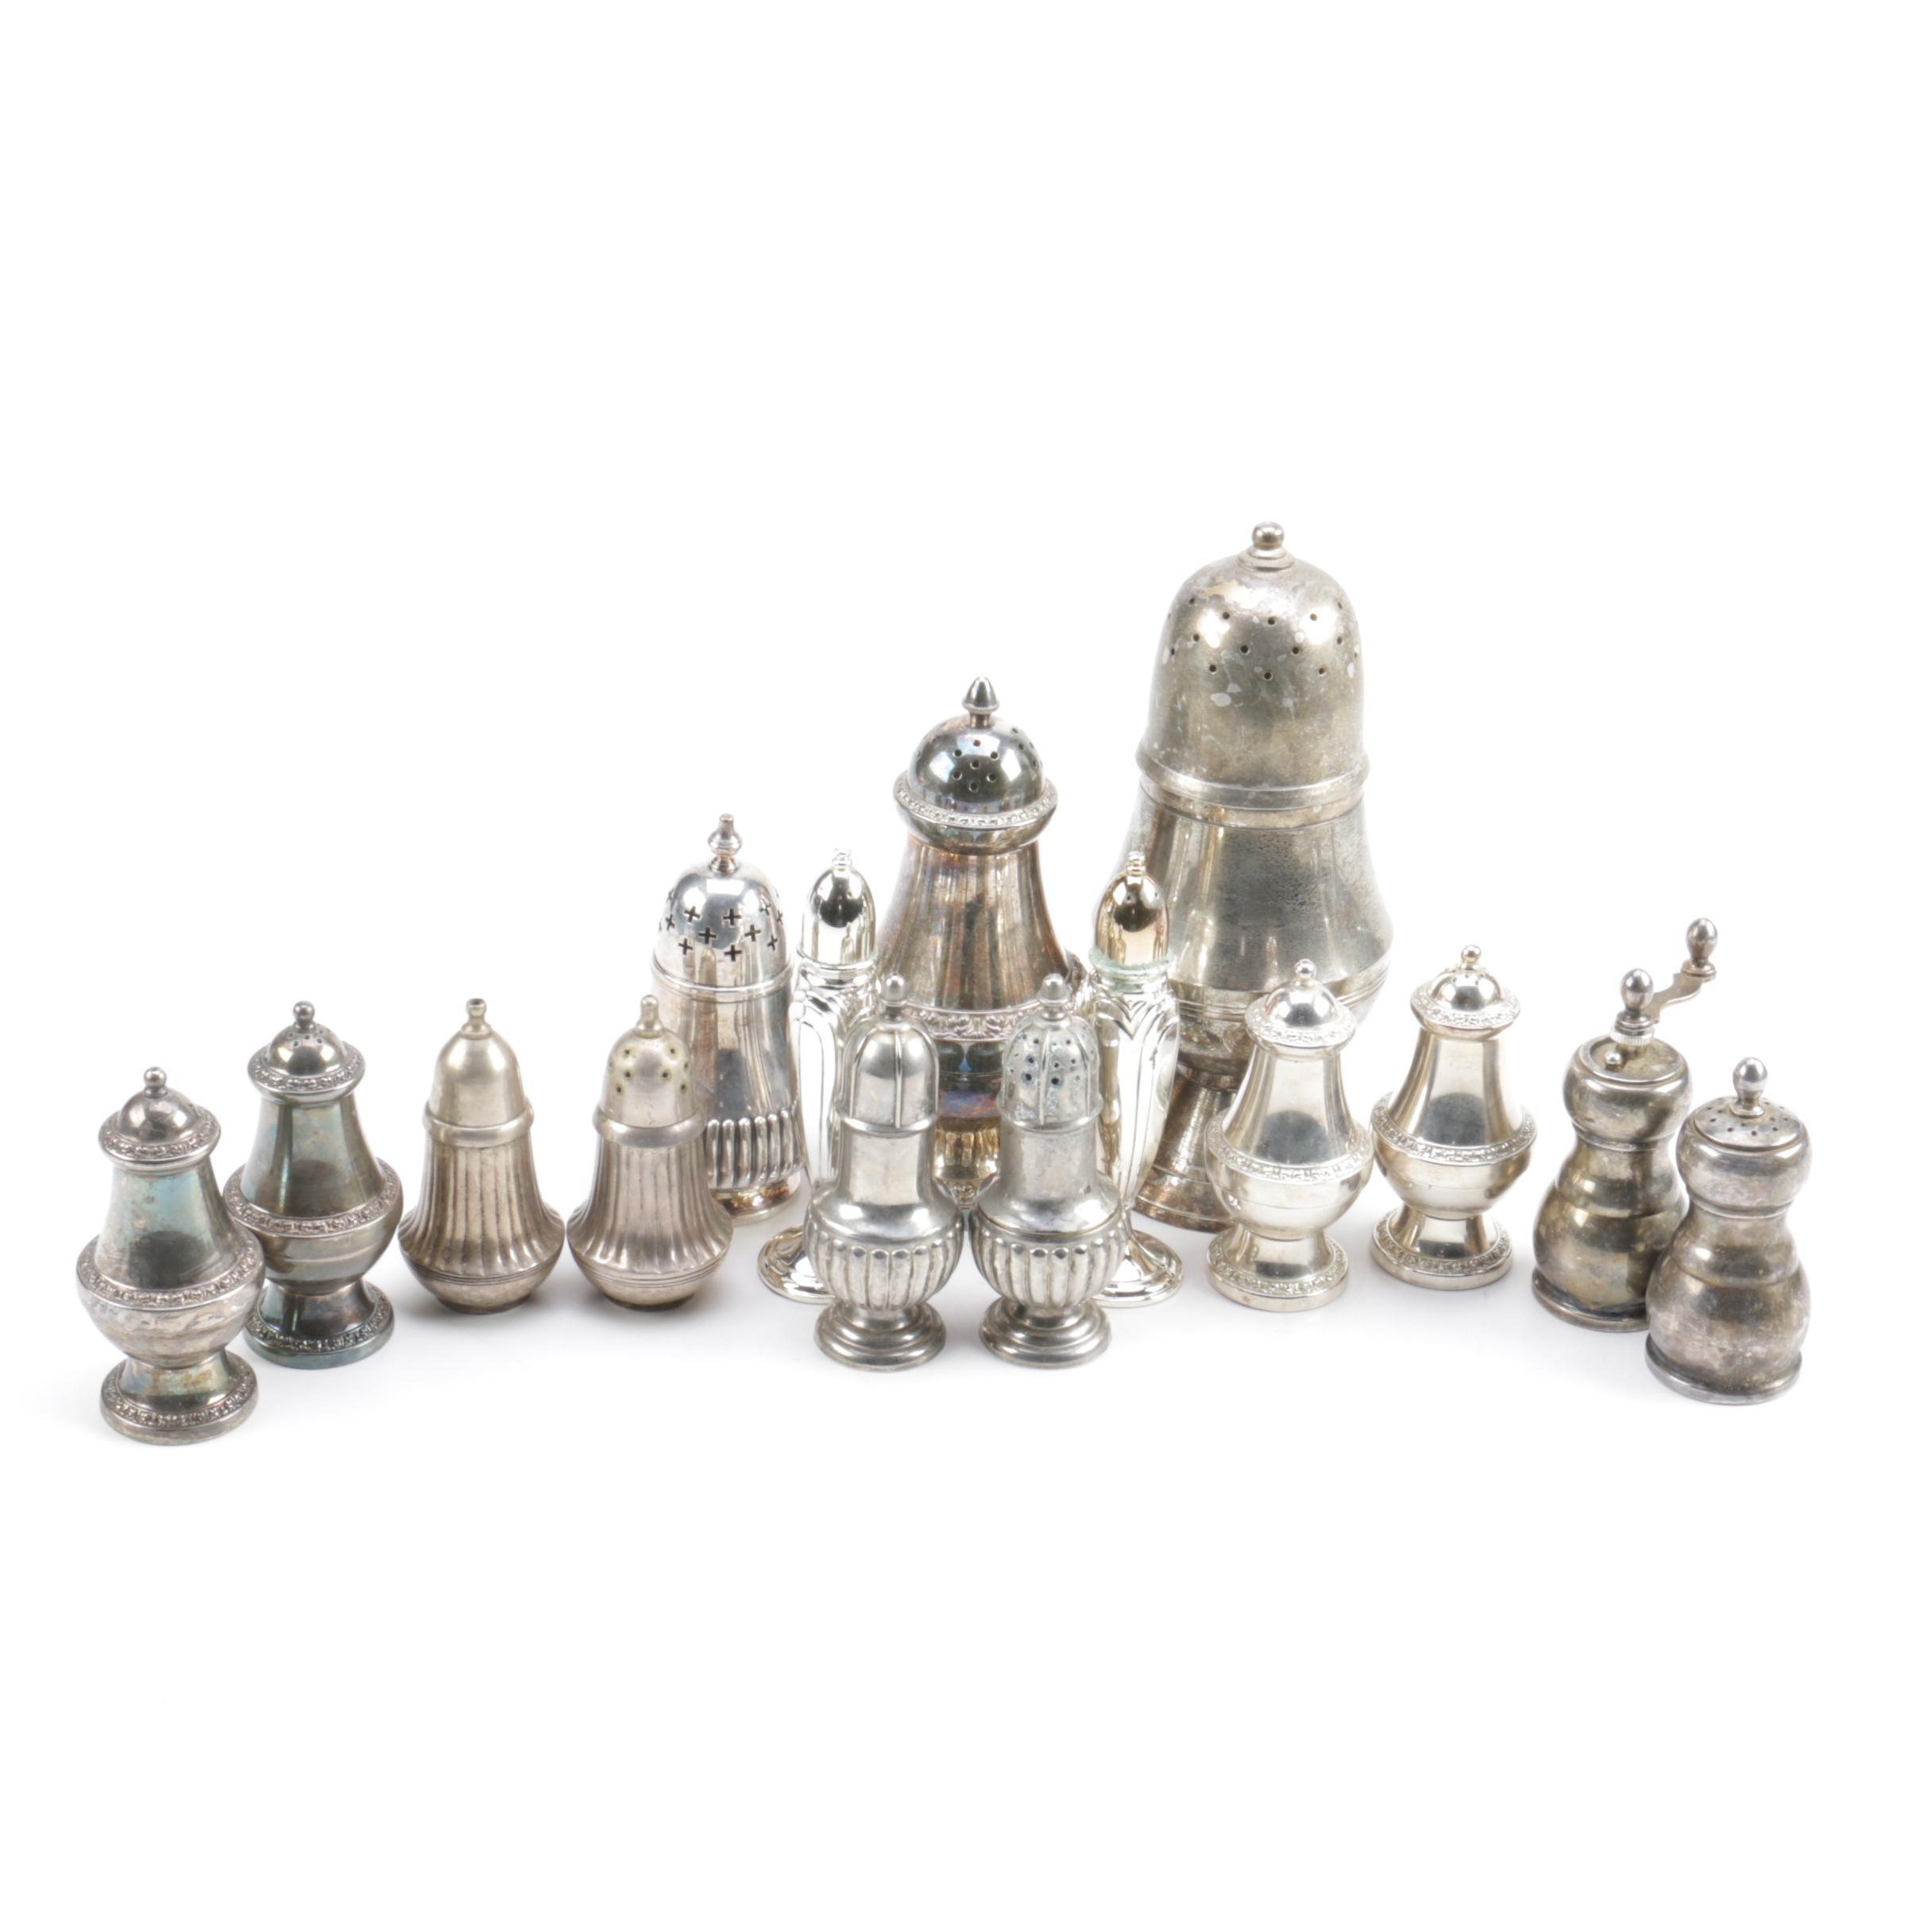 Silver-Plated and Toned Shaker Collection Including Oneida